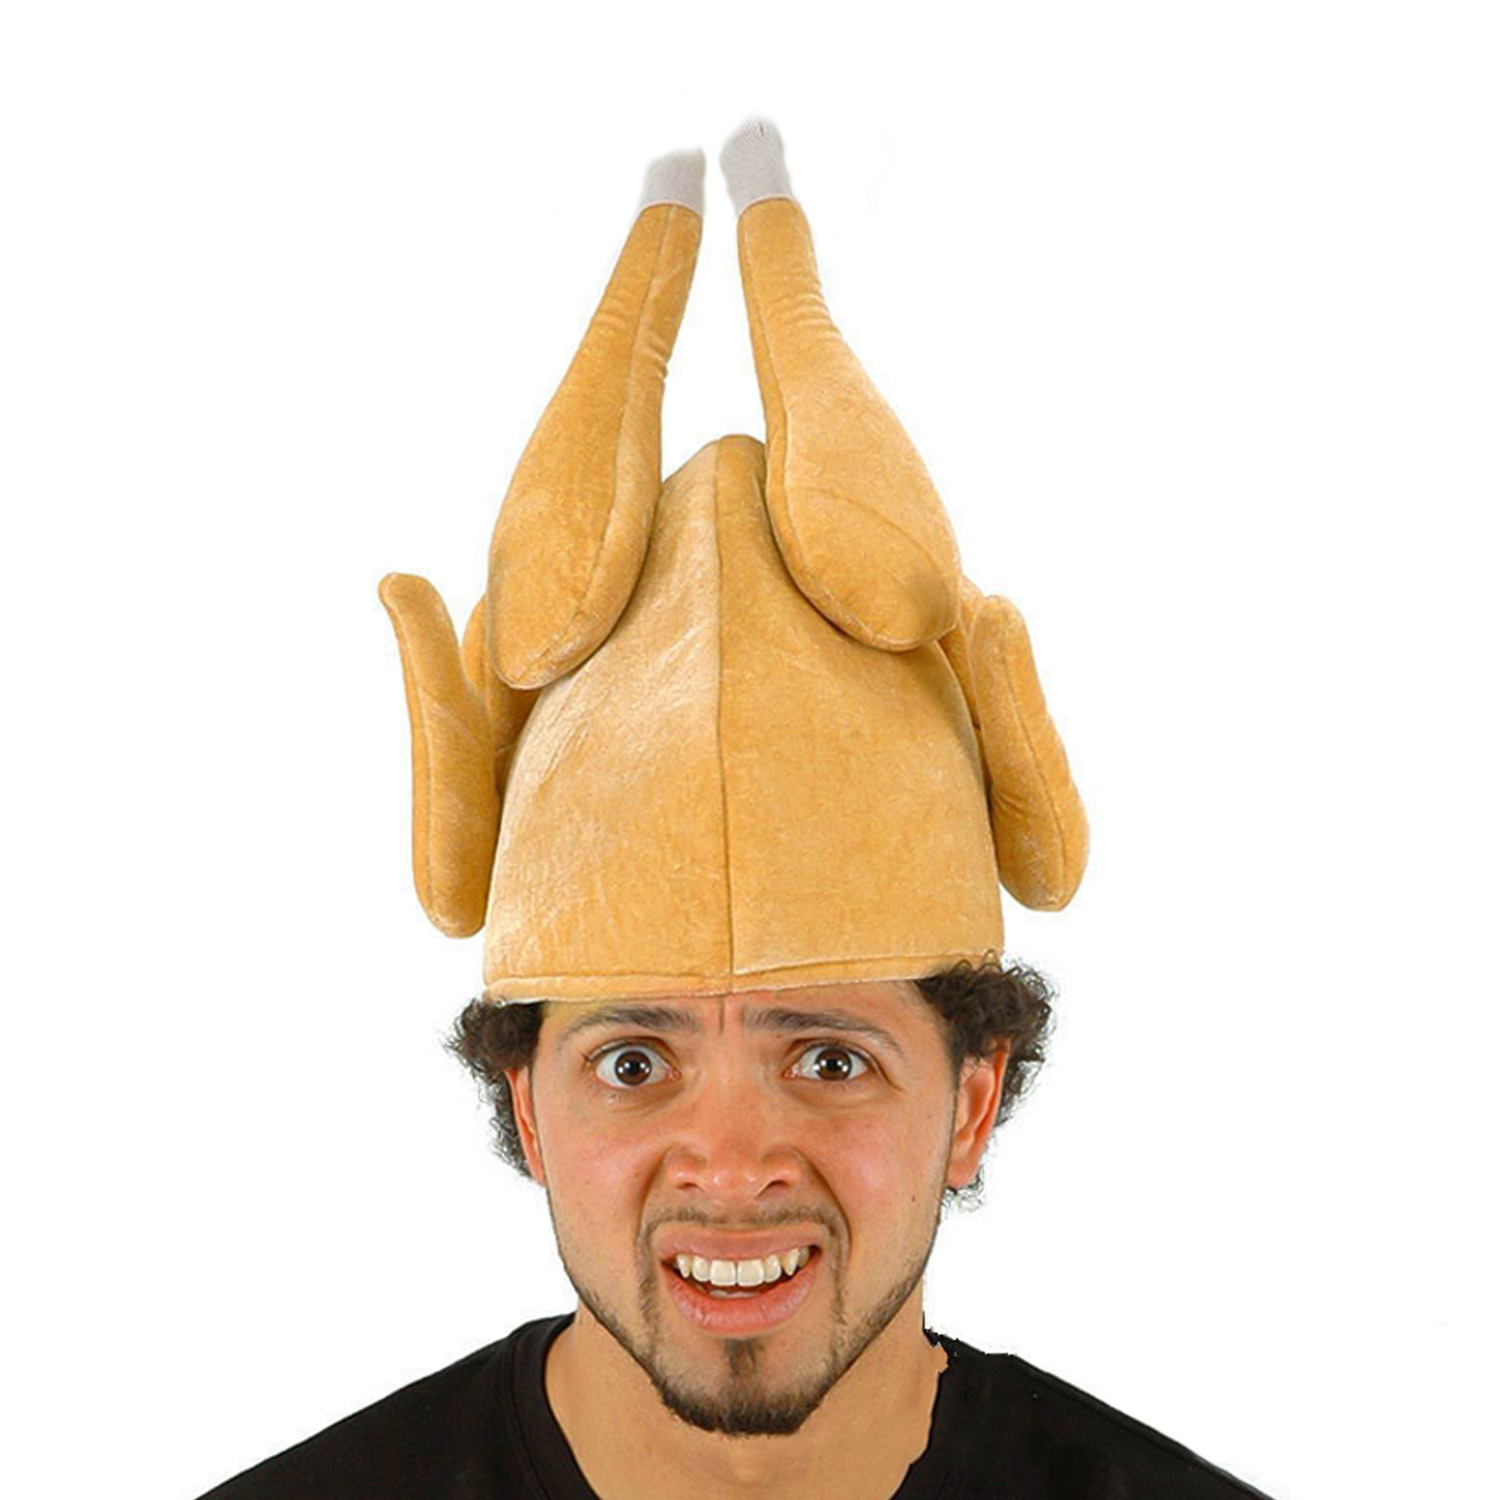 Funny Soft Velvet Roasted Turkey Hat For Adults Men Women Thanksgiving Party Headwear Costume Accessories